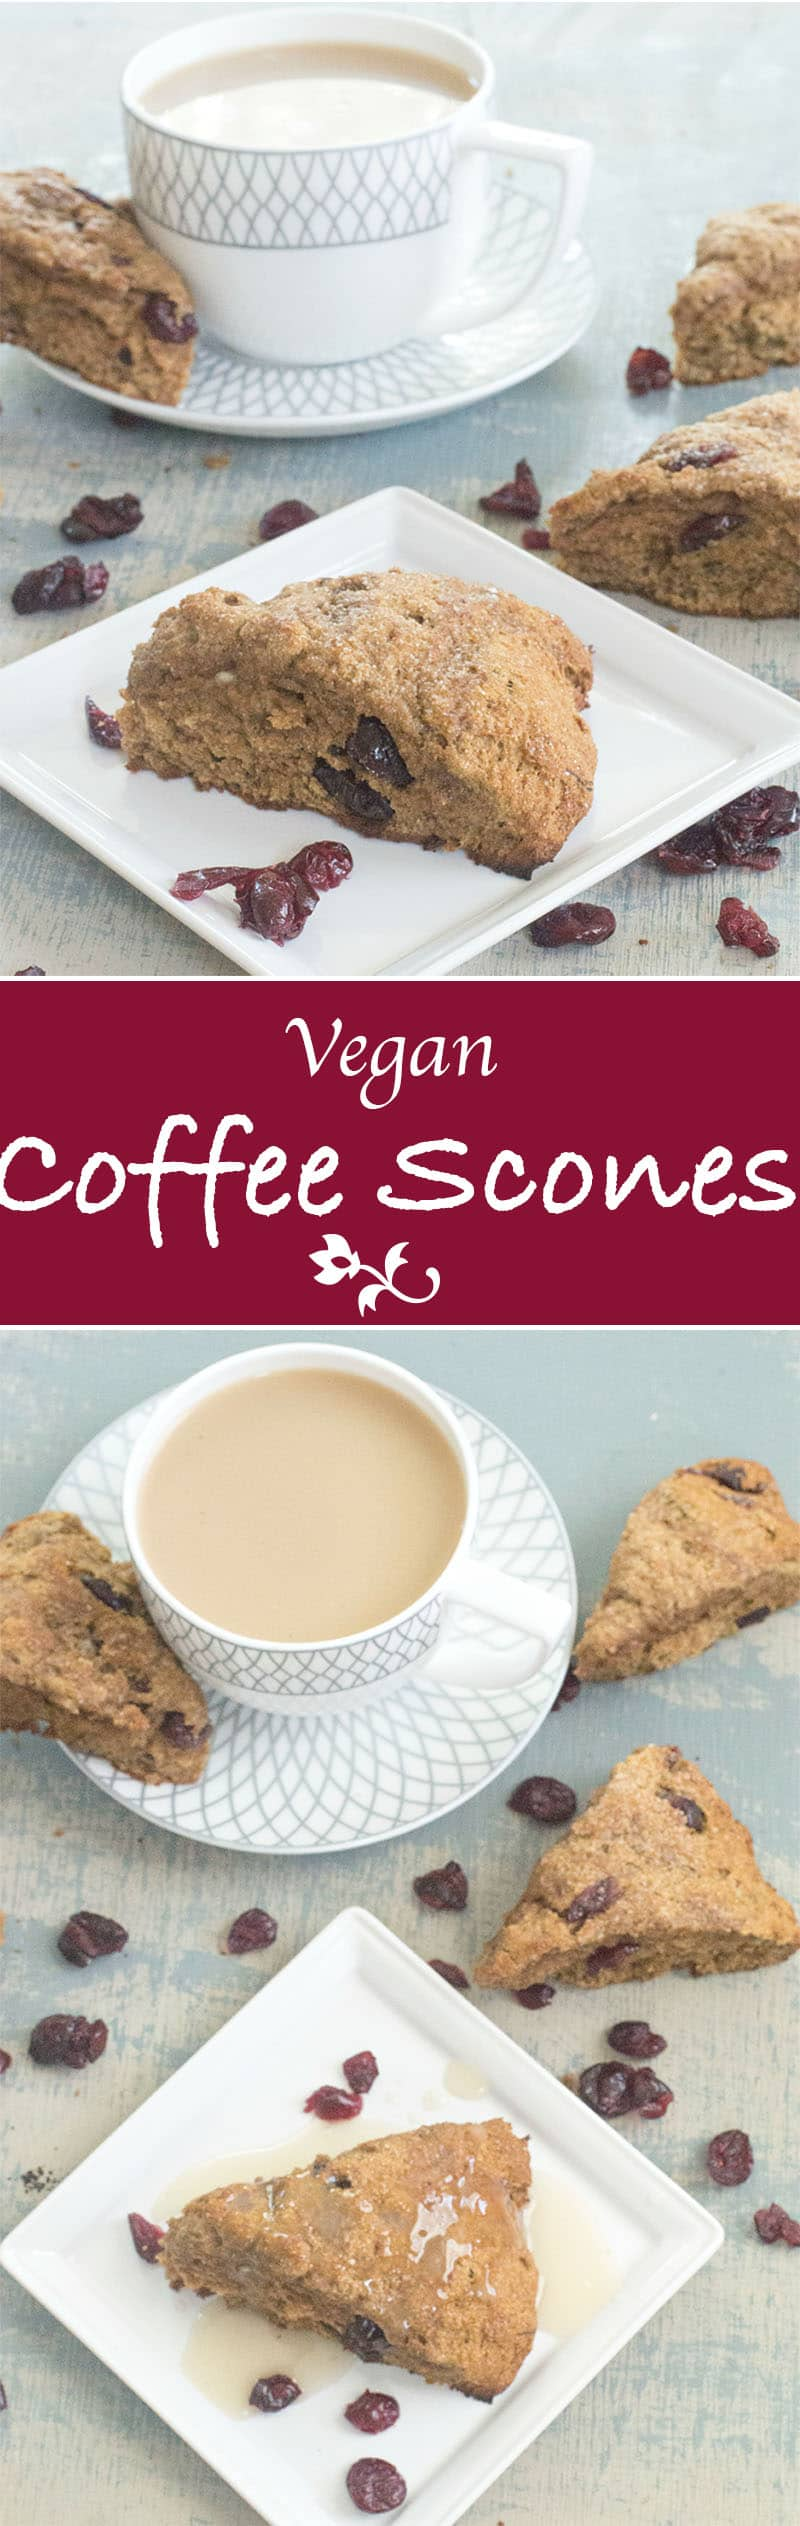 Whole wheat vegan scones made with Cranberries & Gourmesso coffee. They are simple to make and are absolutely delicious. Perfect for a tea time celebration